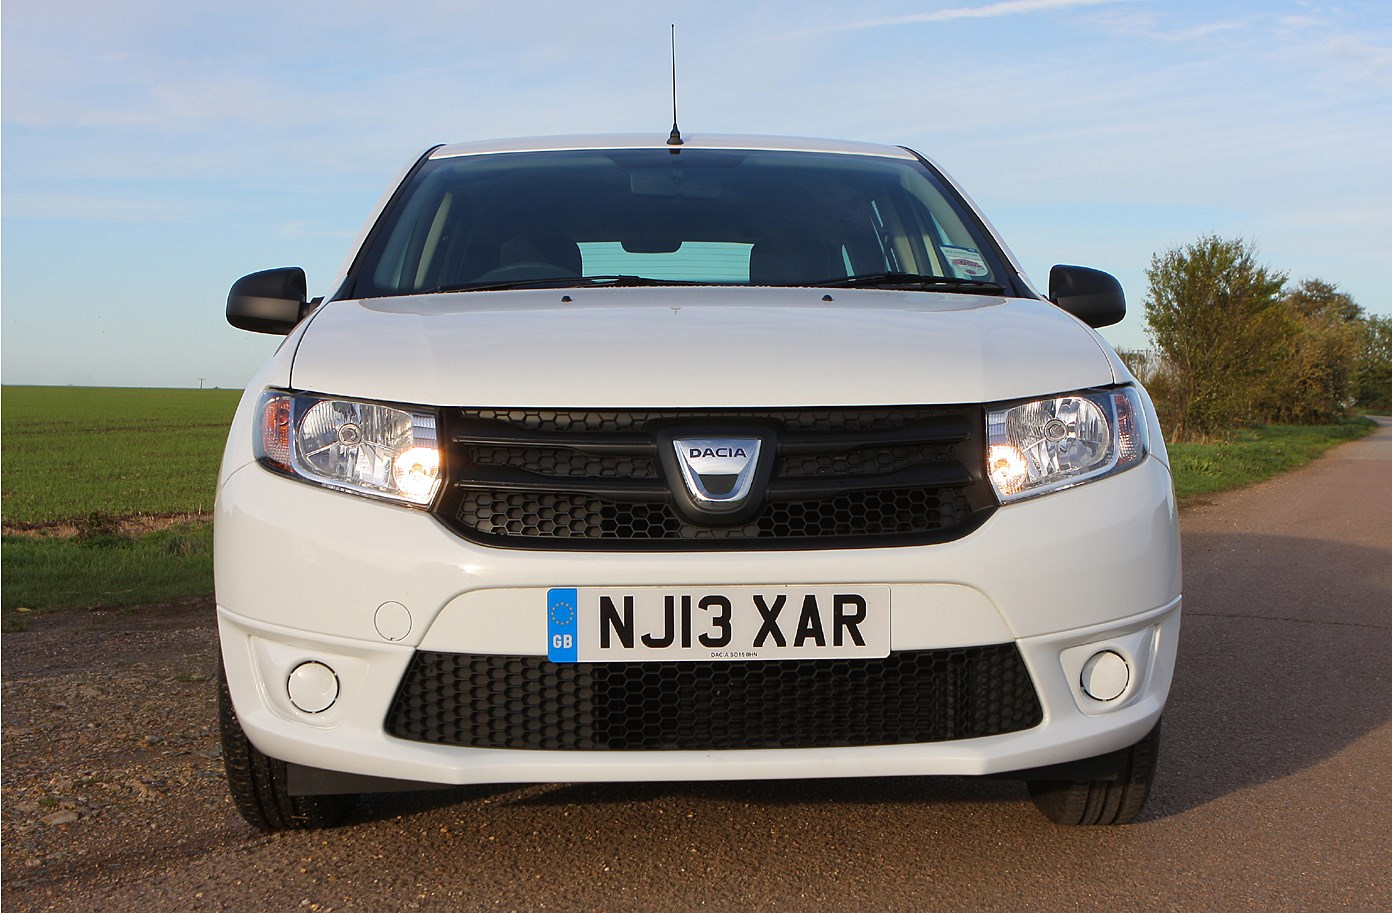 dacia logan mcv 2013 features equipment and accessories parkers. Black Bedroom Furniture Sets. Home Design Ideas